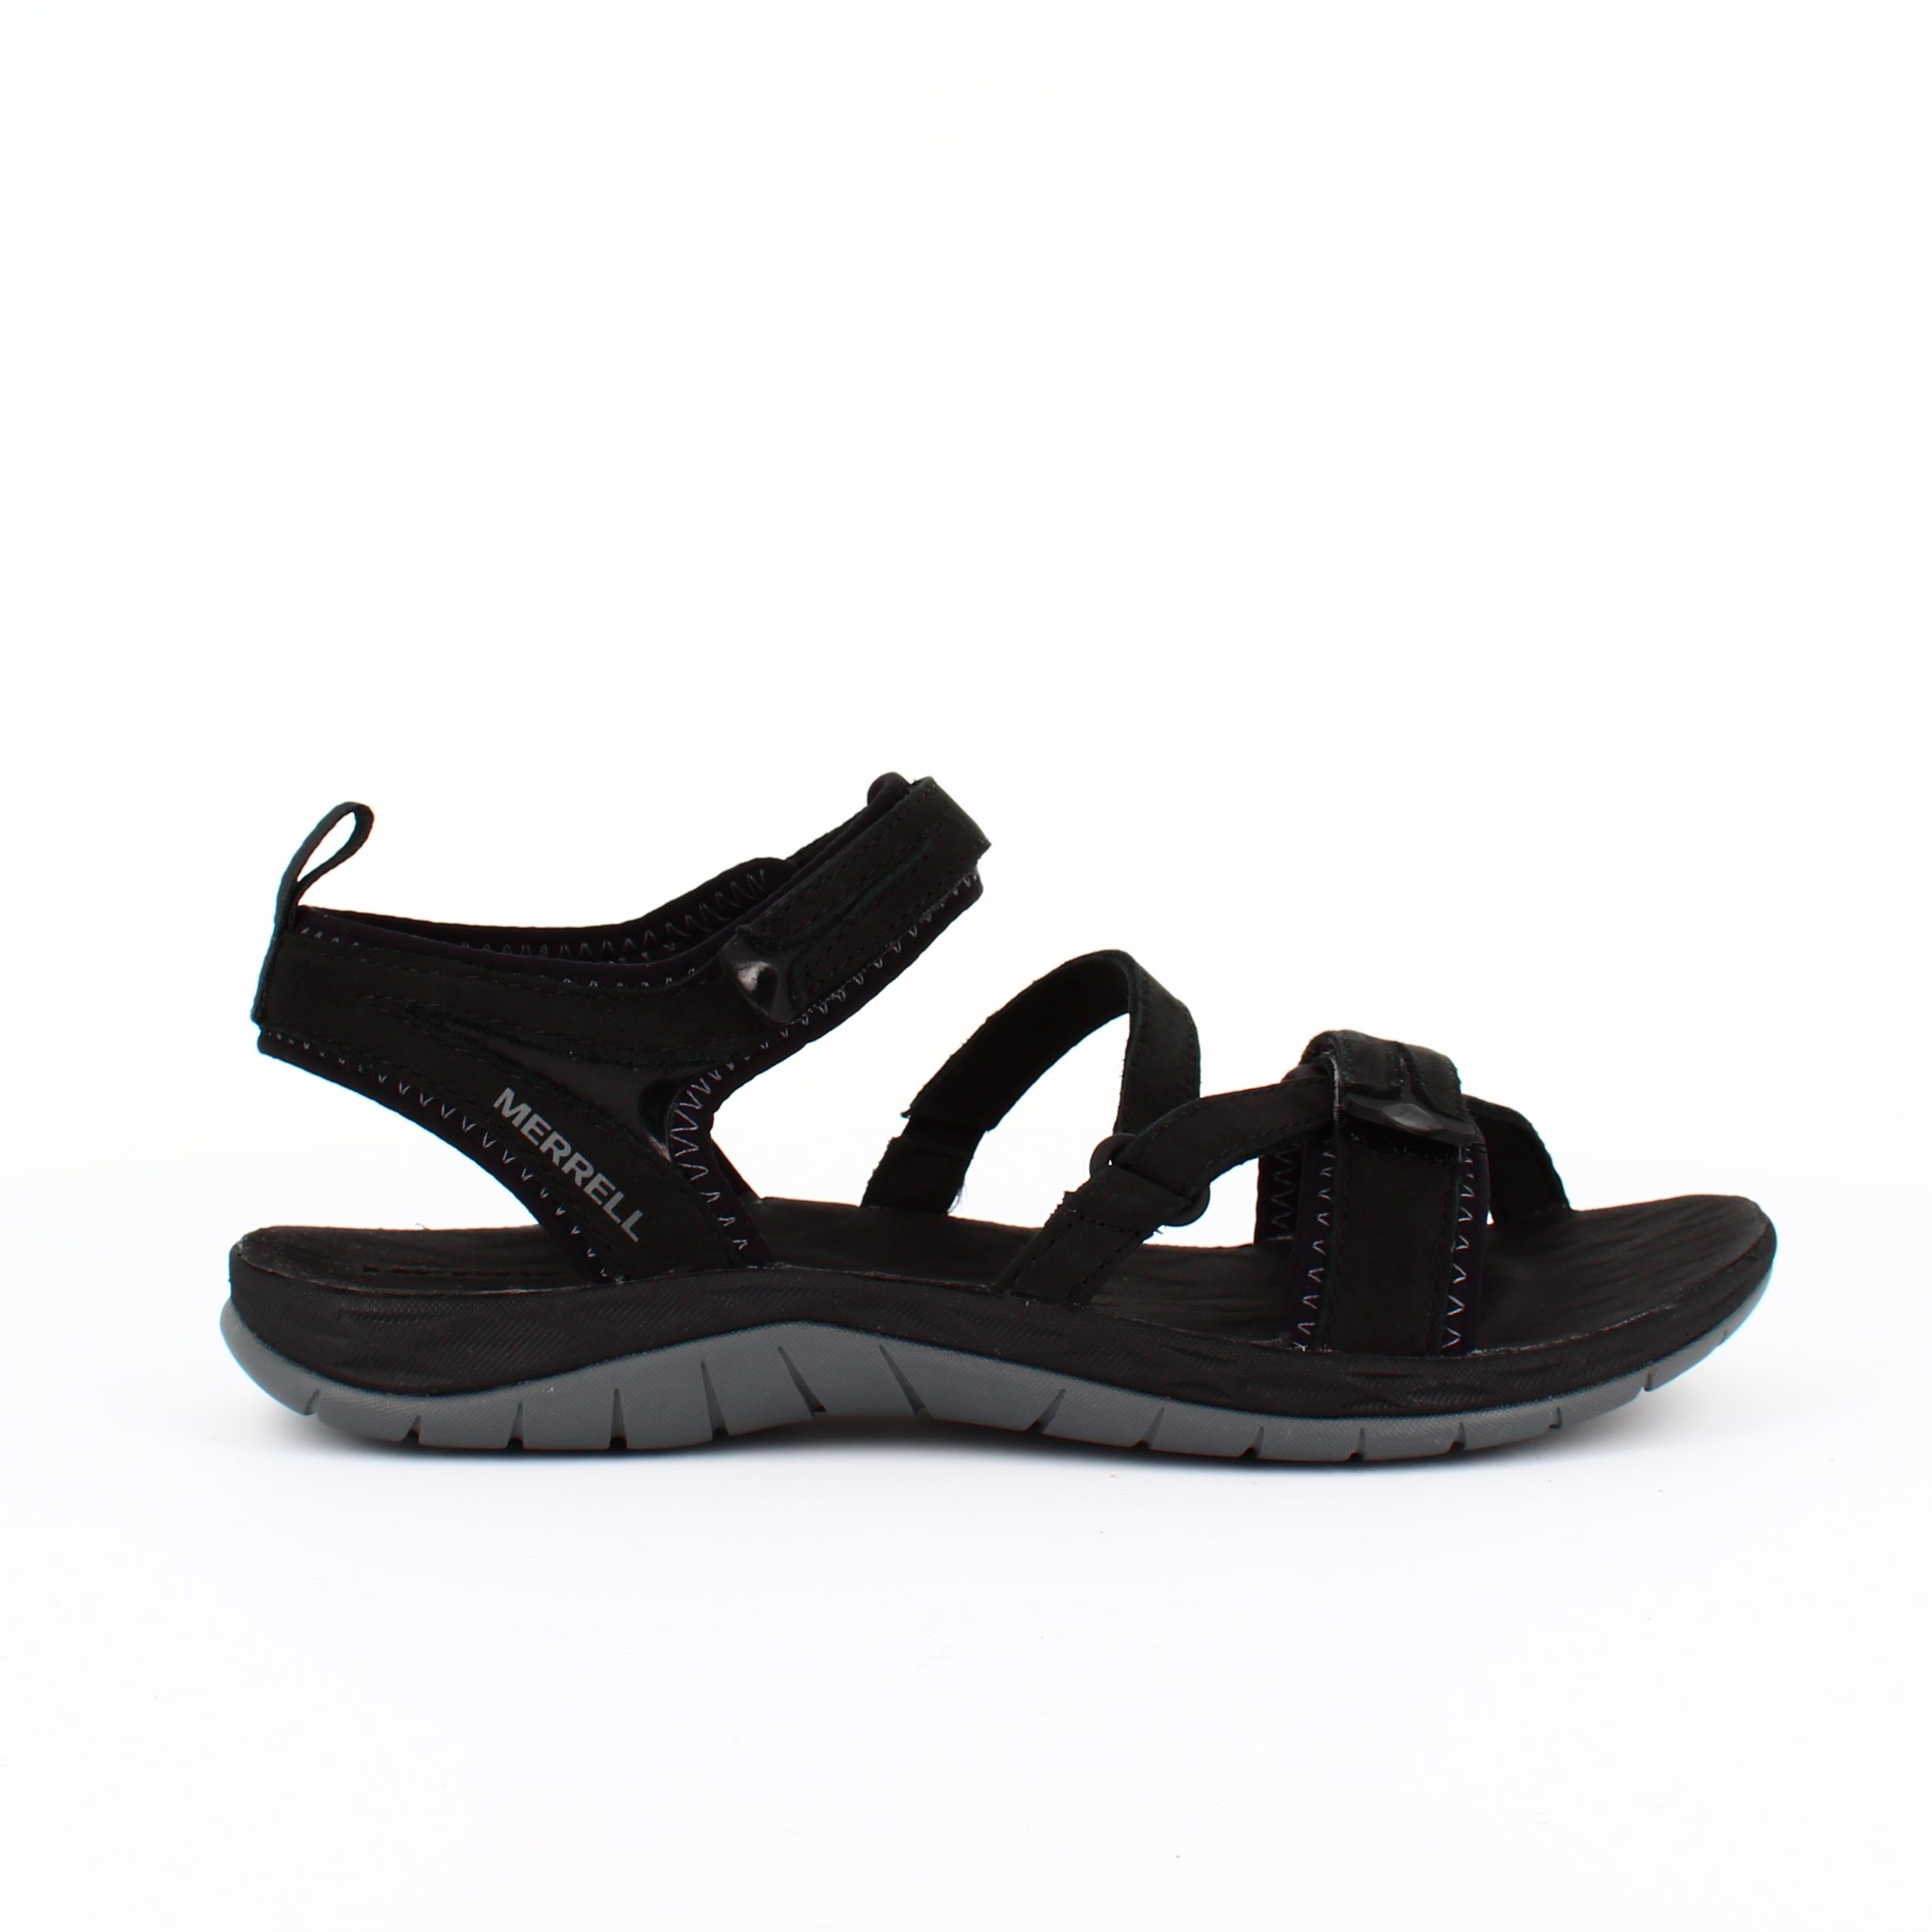 Image of   Sort sporty sandal fra Merrell - 41